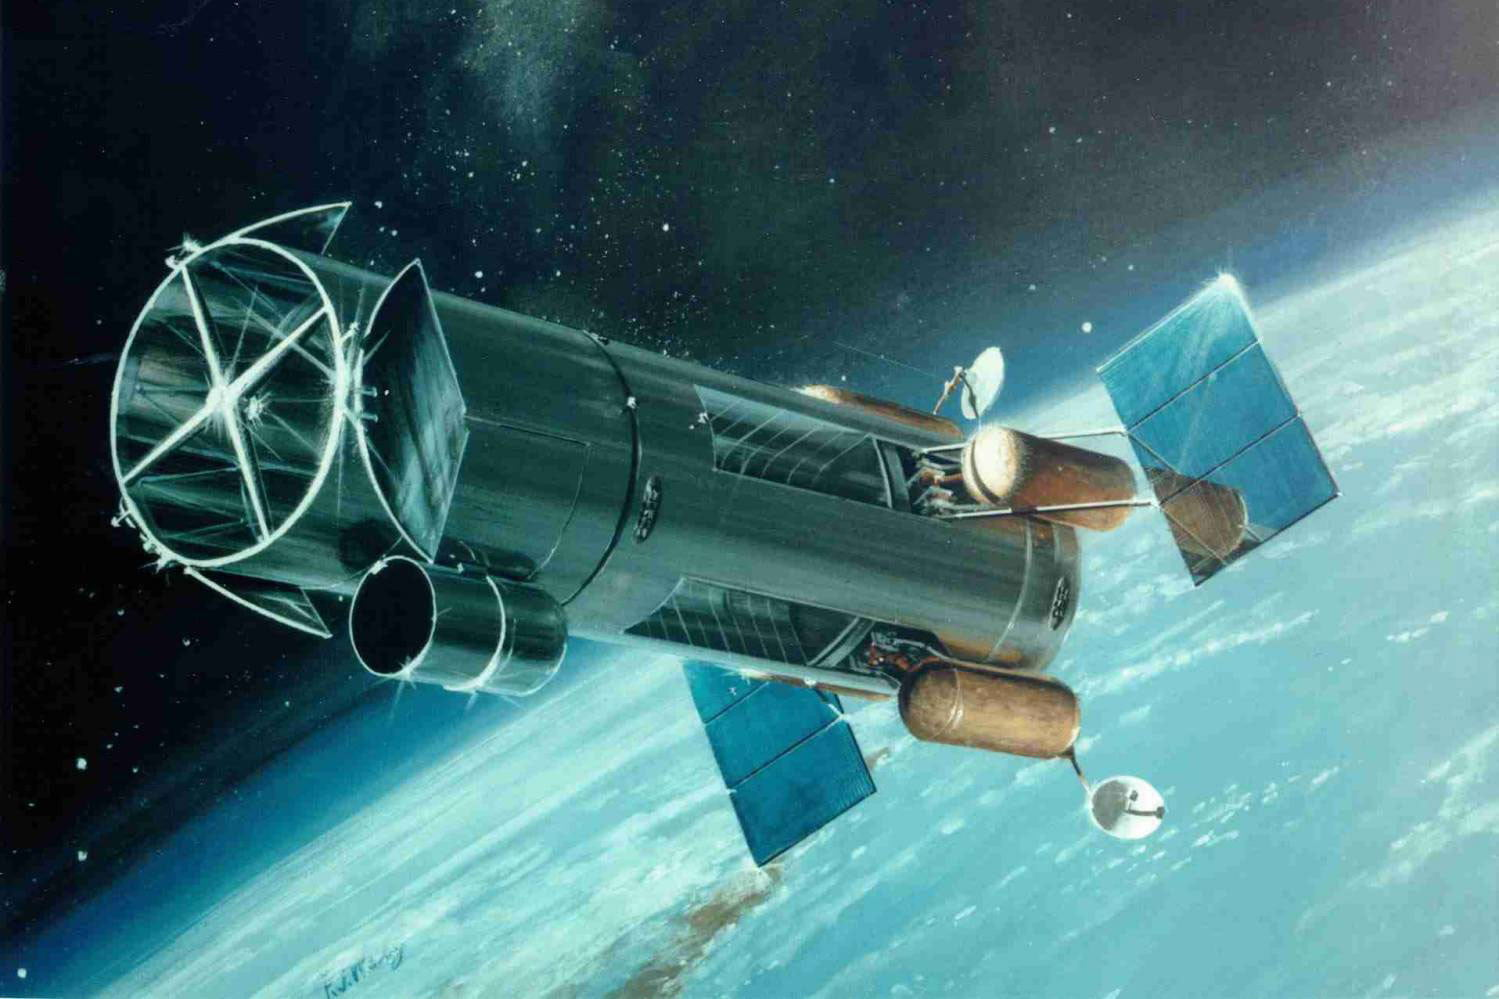 Weaponized Satellites and the Cold War in Space